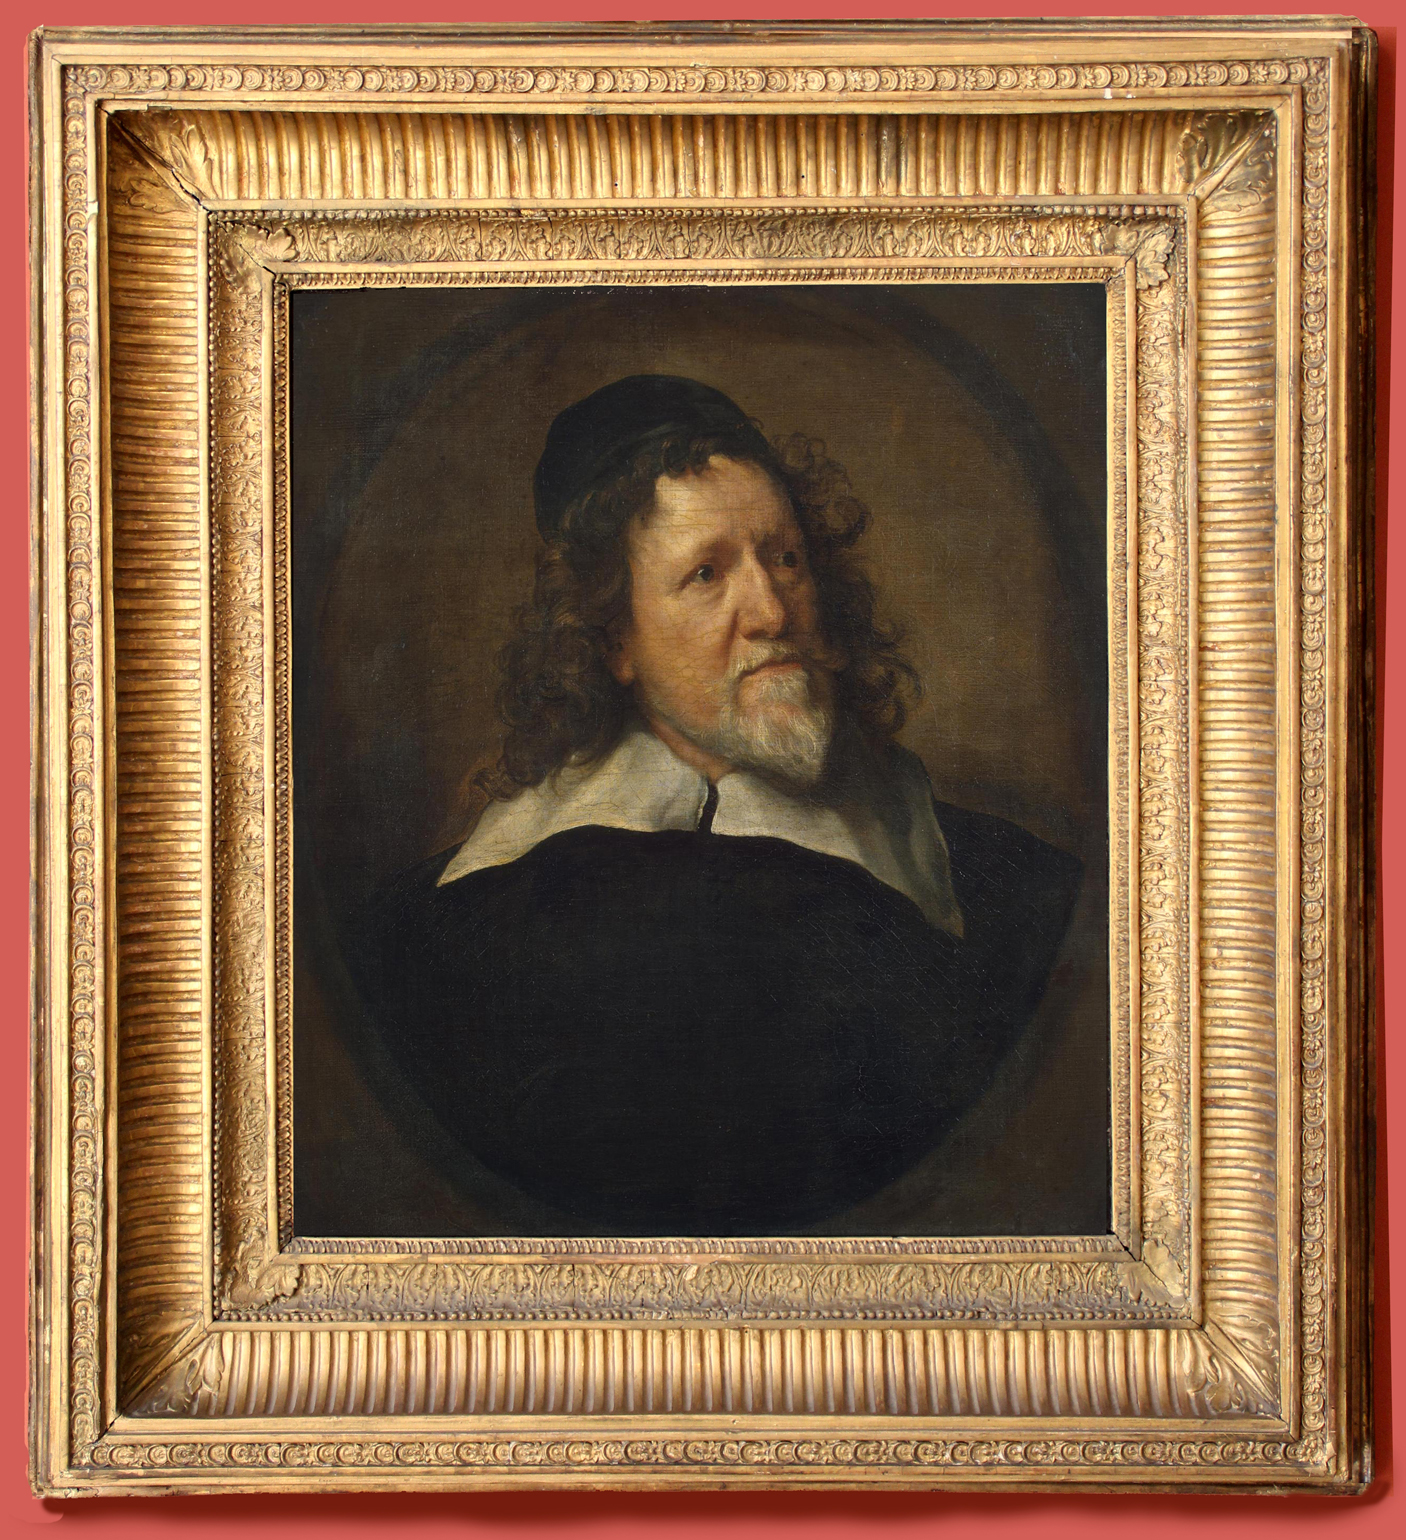 Reasons for reframing: focusing on Titian | The Frame Blog